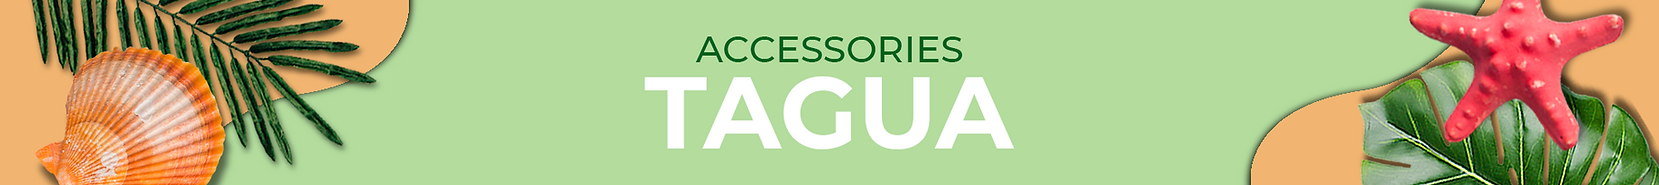 accessories_tagua.png